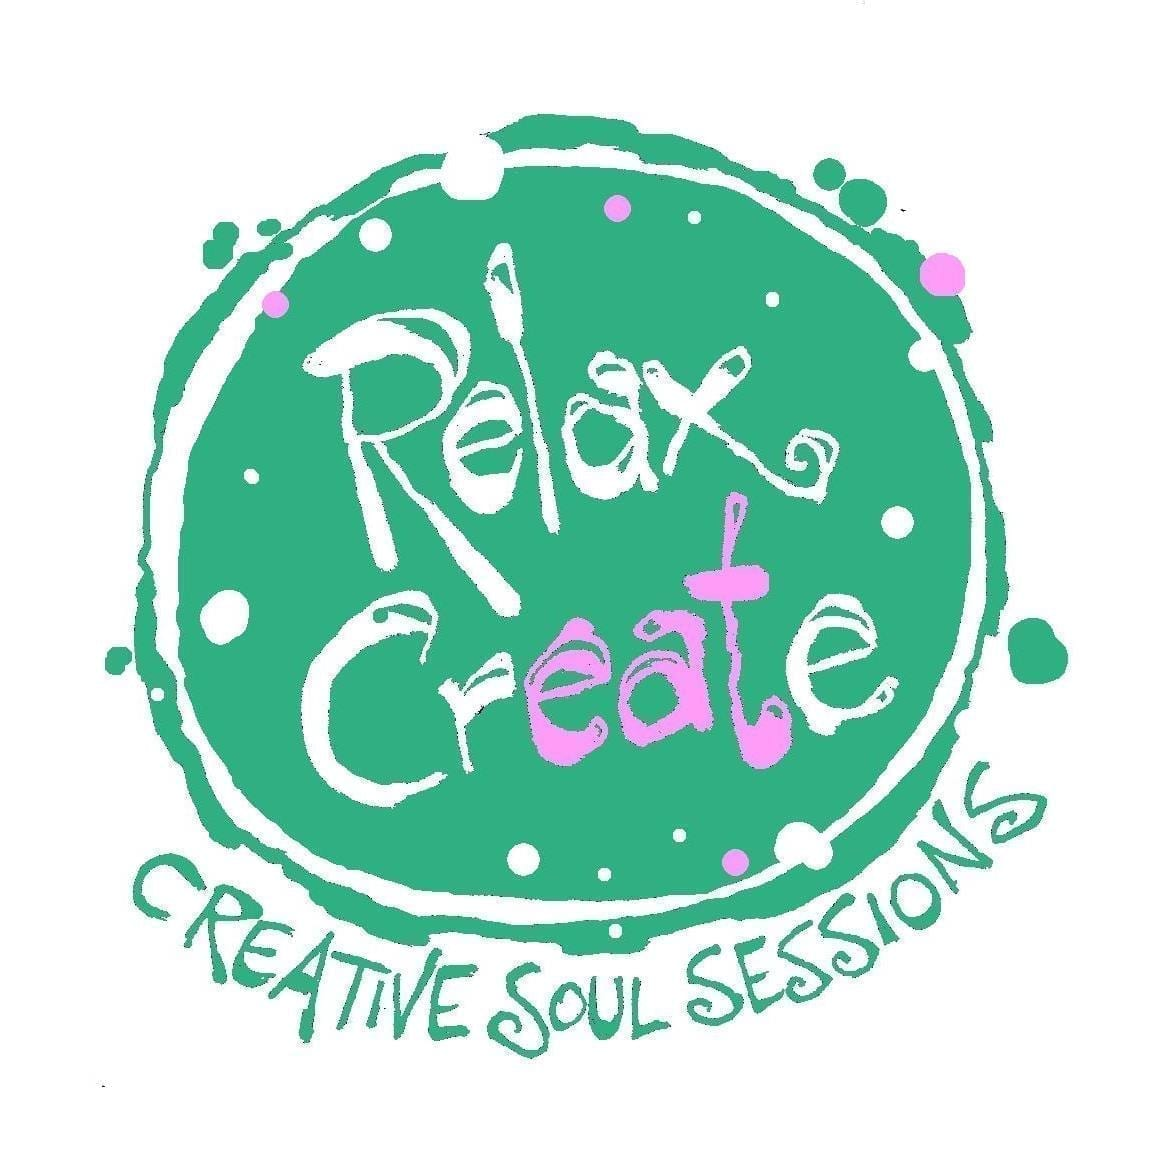 Creative Soul Sessions - Art Class